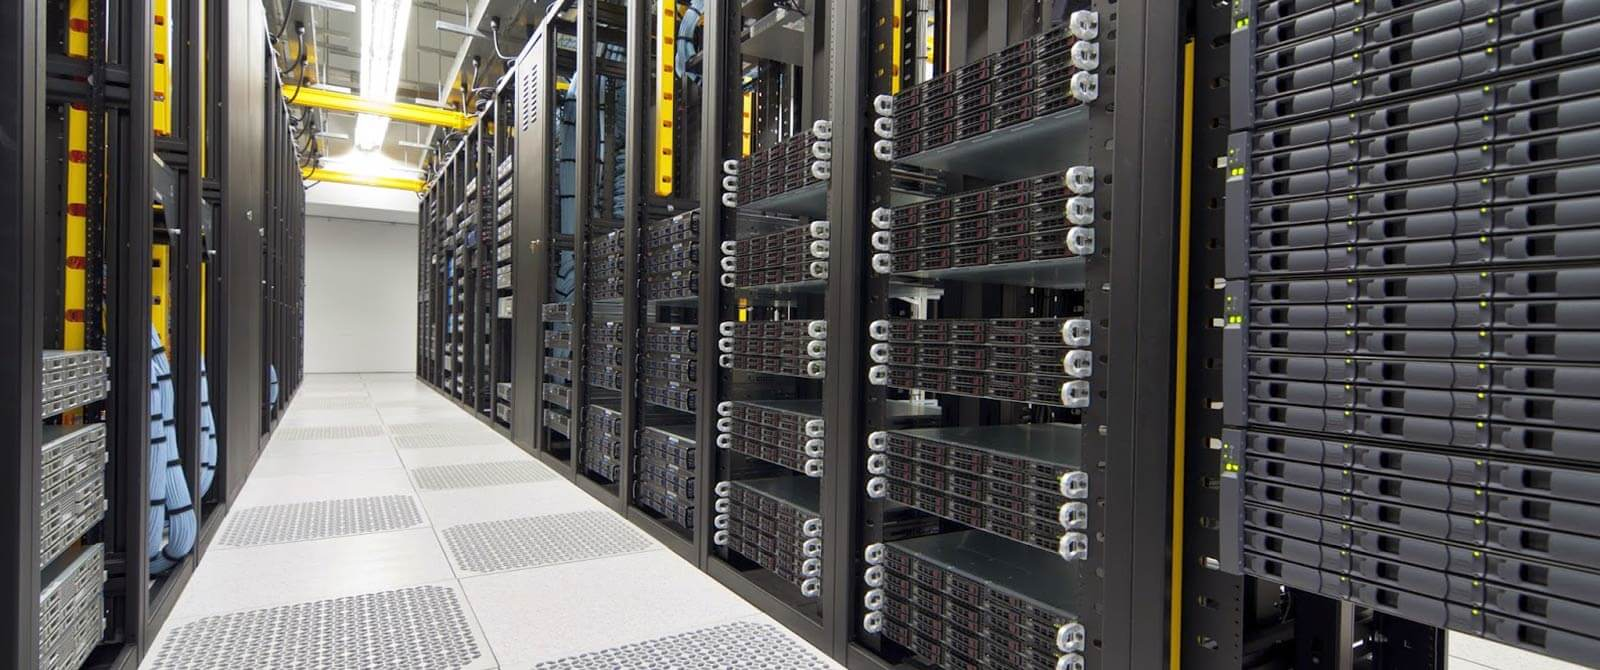 Shelves of servers in a data centre